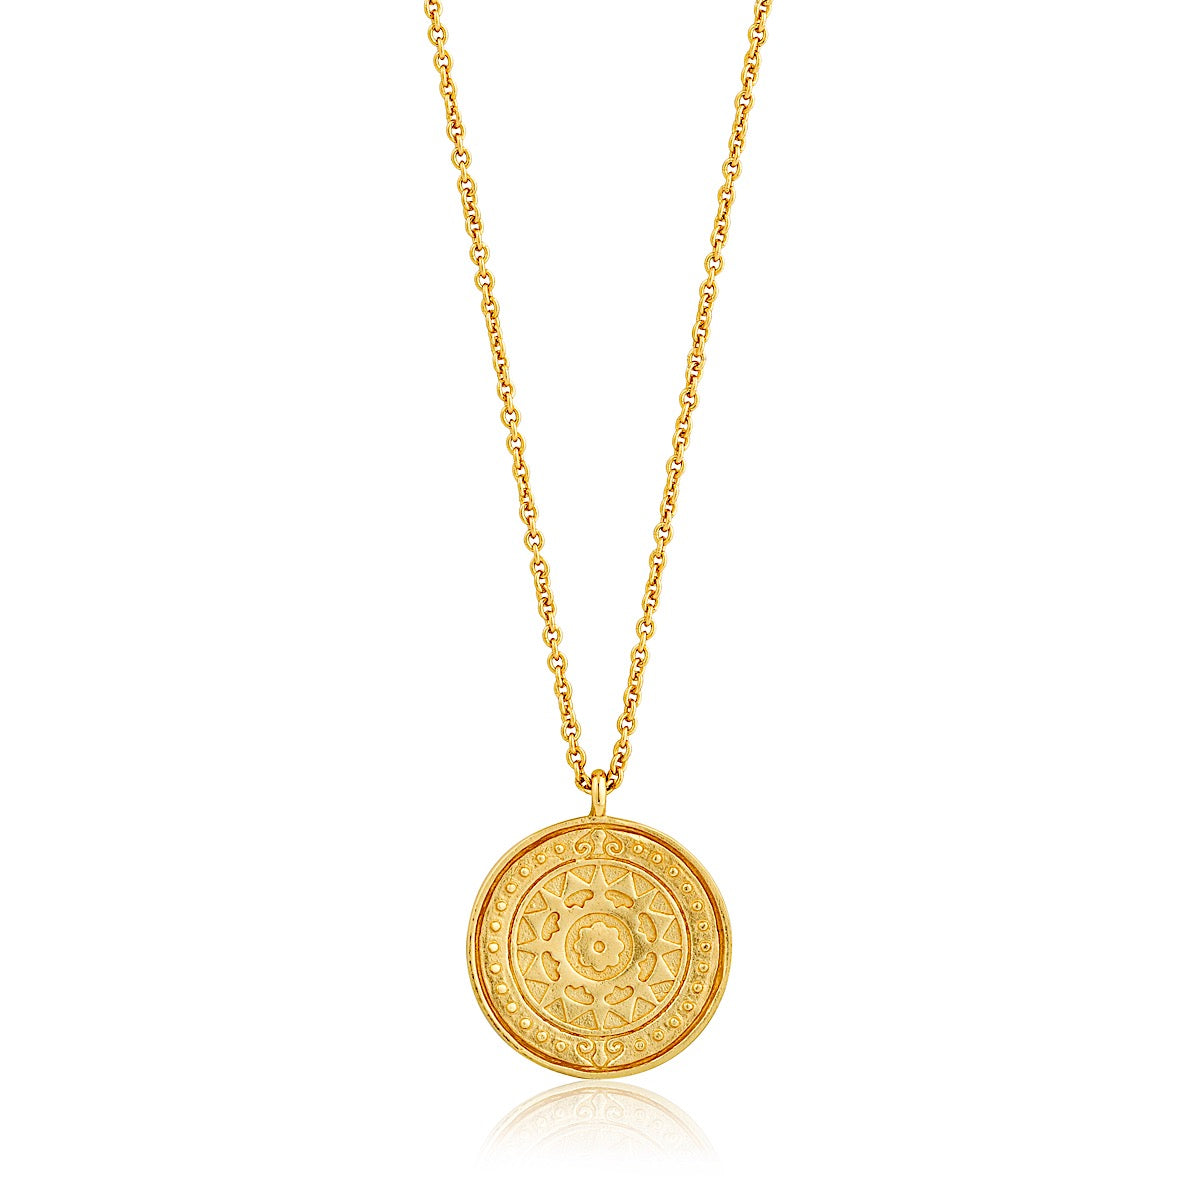 Ania Haie Gold Verginia Sun Necklace | More Than Just at Gift | Narborough Hall